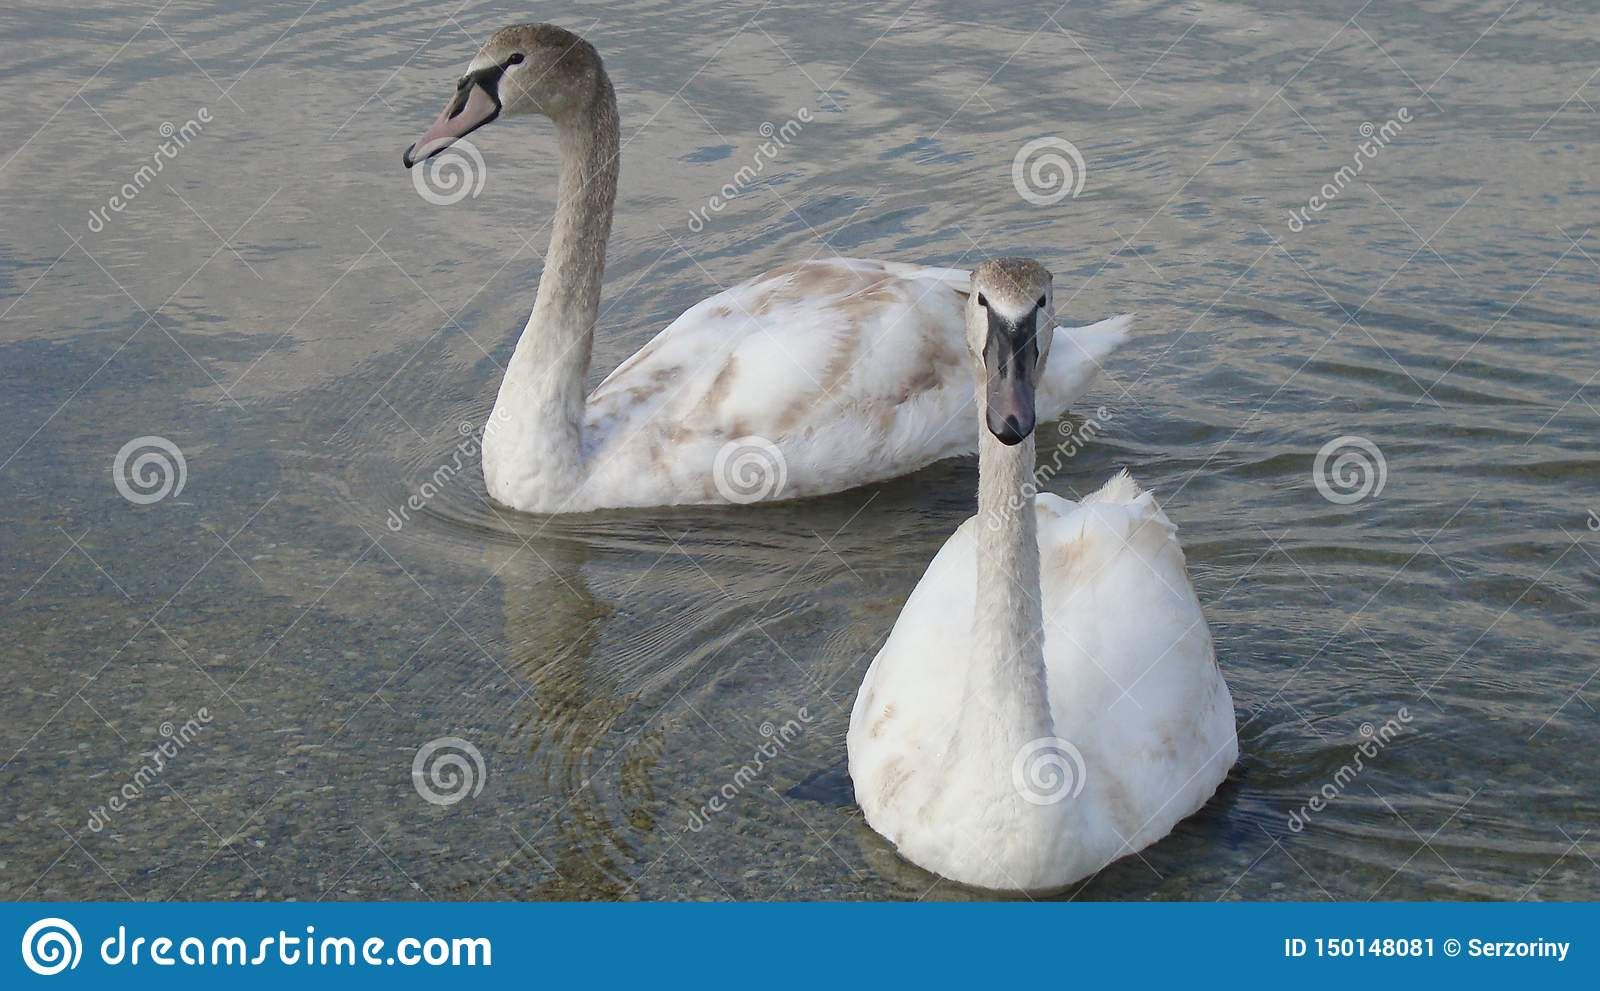 Pair of swans on a crystal clear and tranquil water of the lake close up